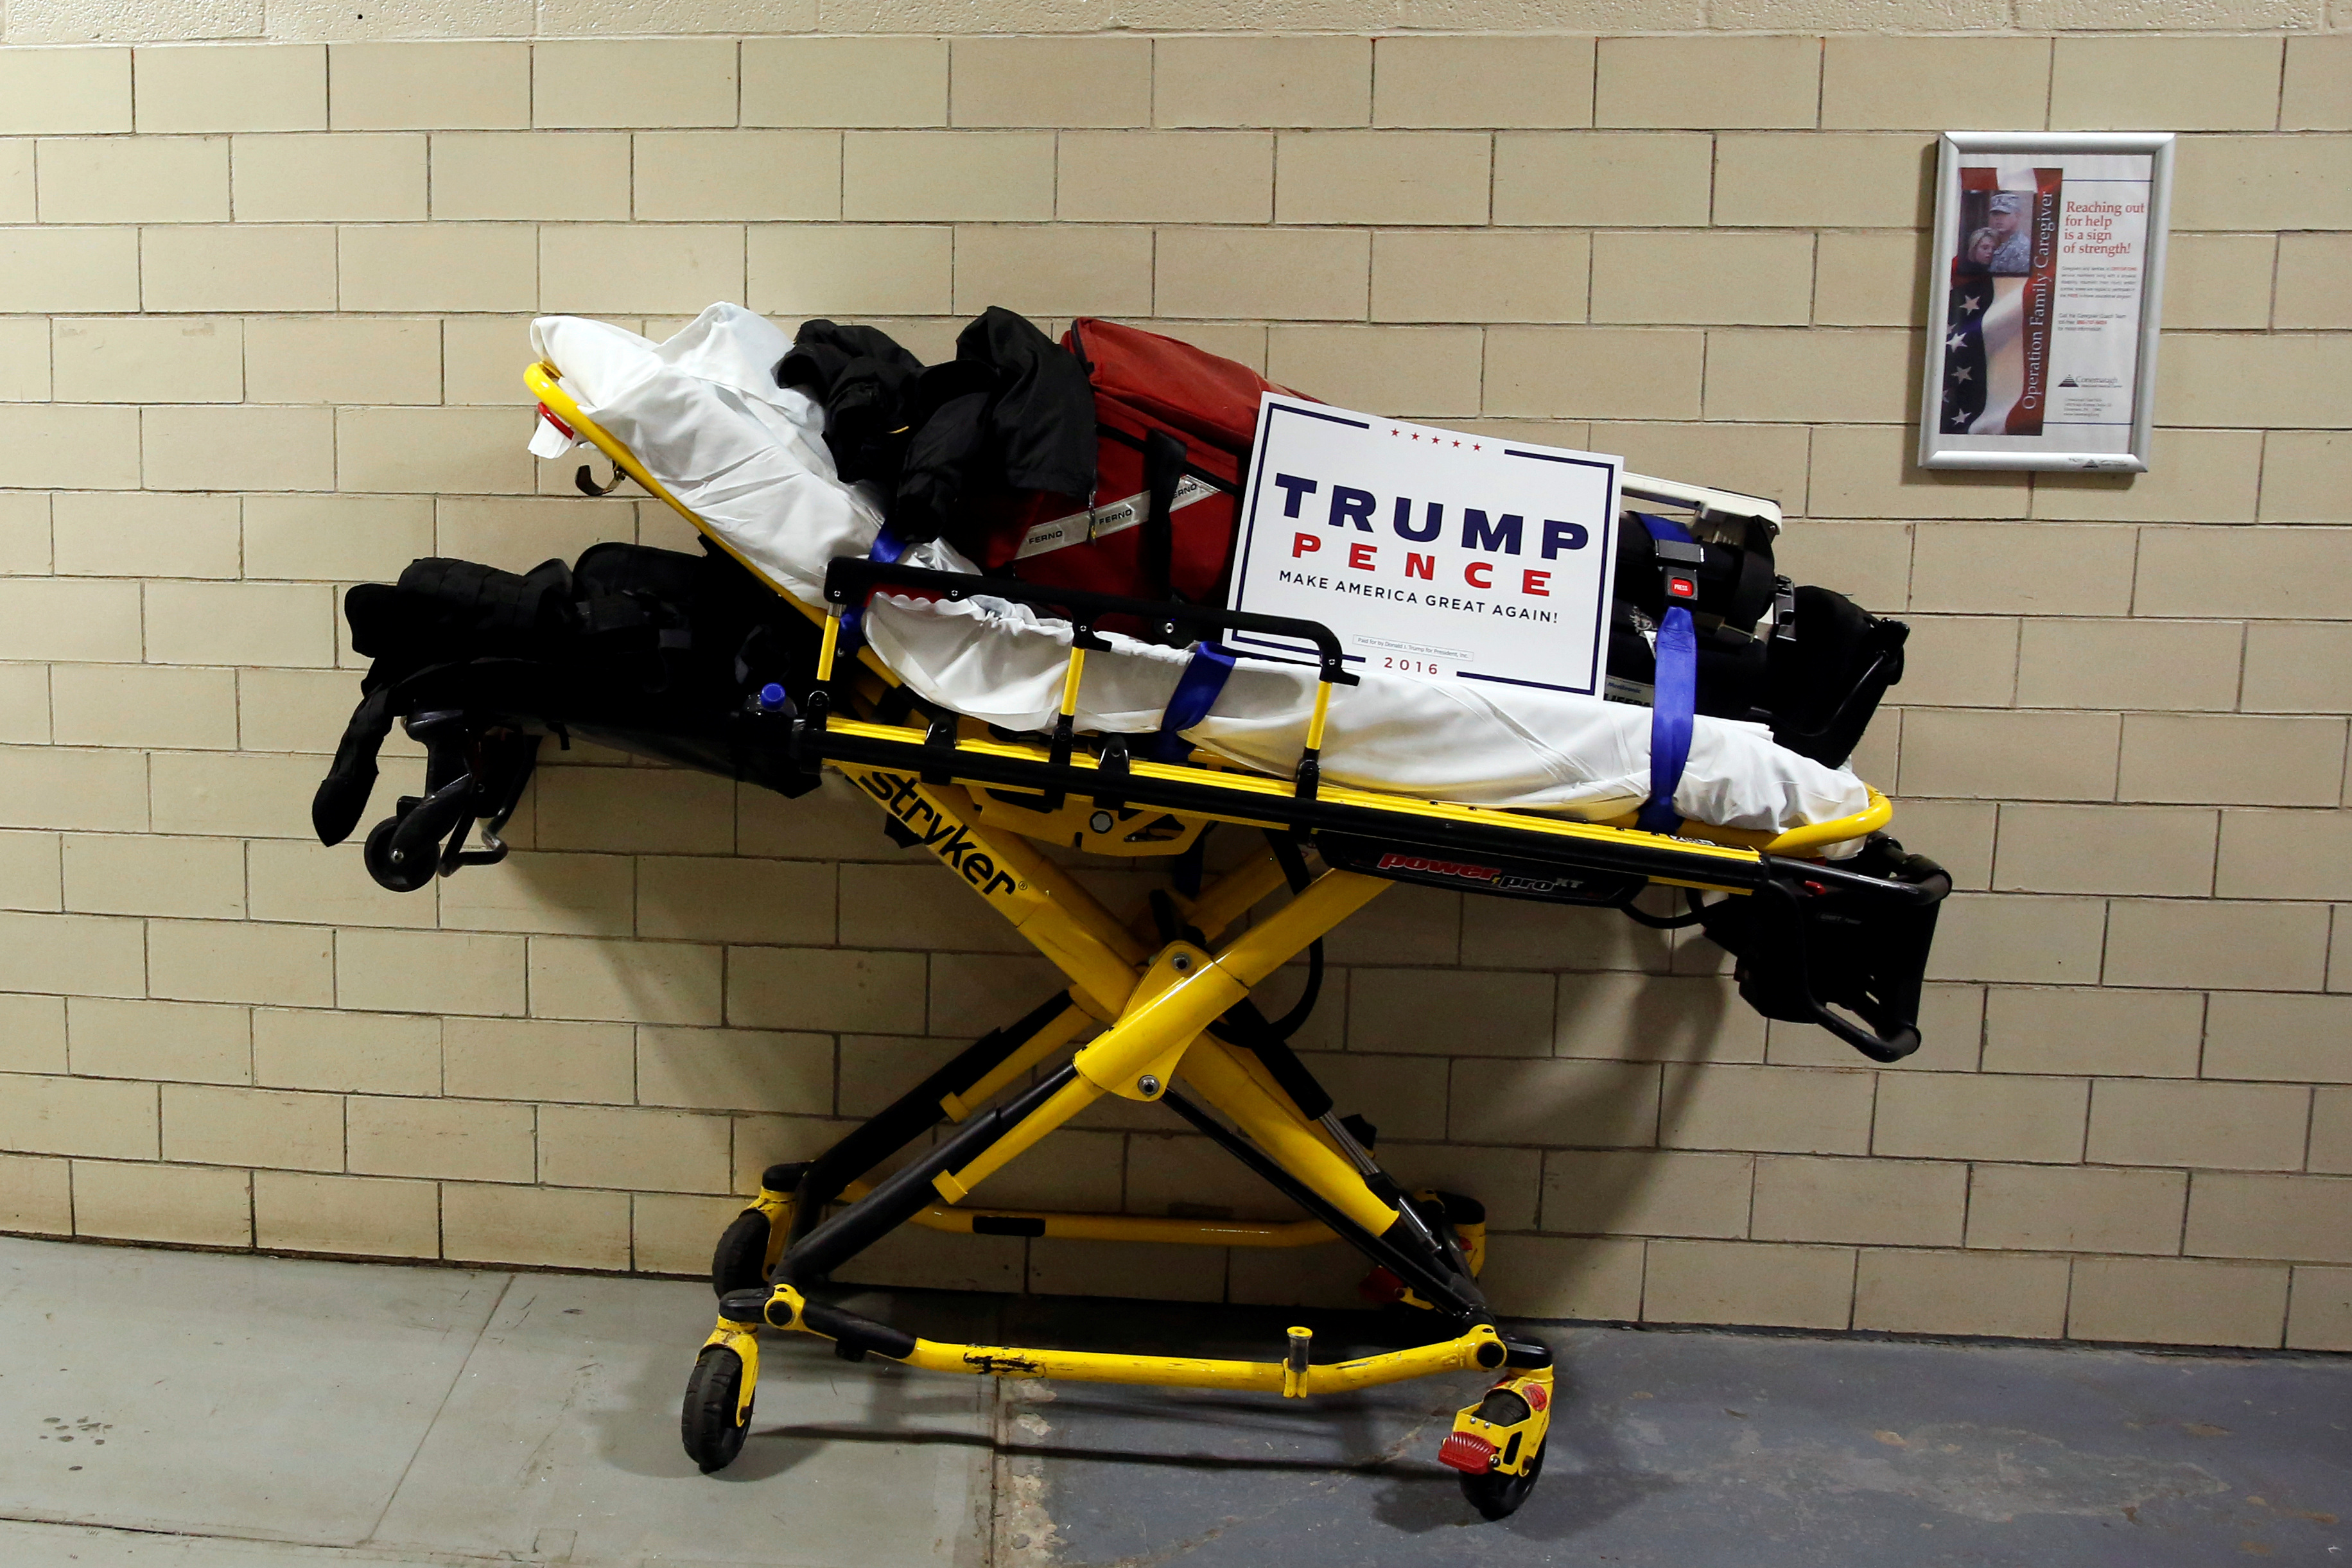 A paramedic's stretcher sits backstage with a Trump campaign sign on it as Donald Trump holds a rally in Johnstown, Pennsylvania, on Oct. 21, 2016.